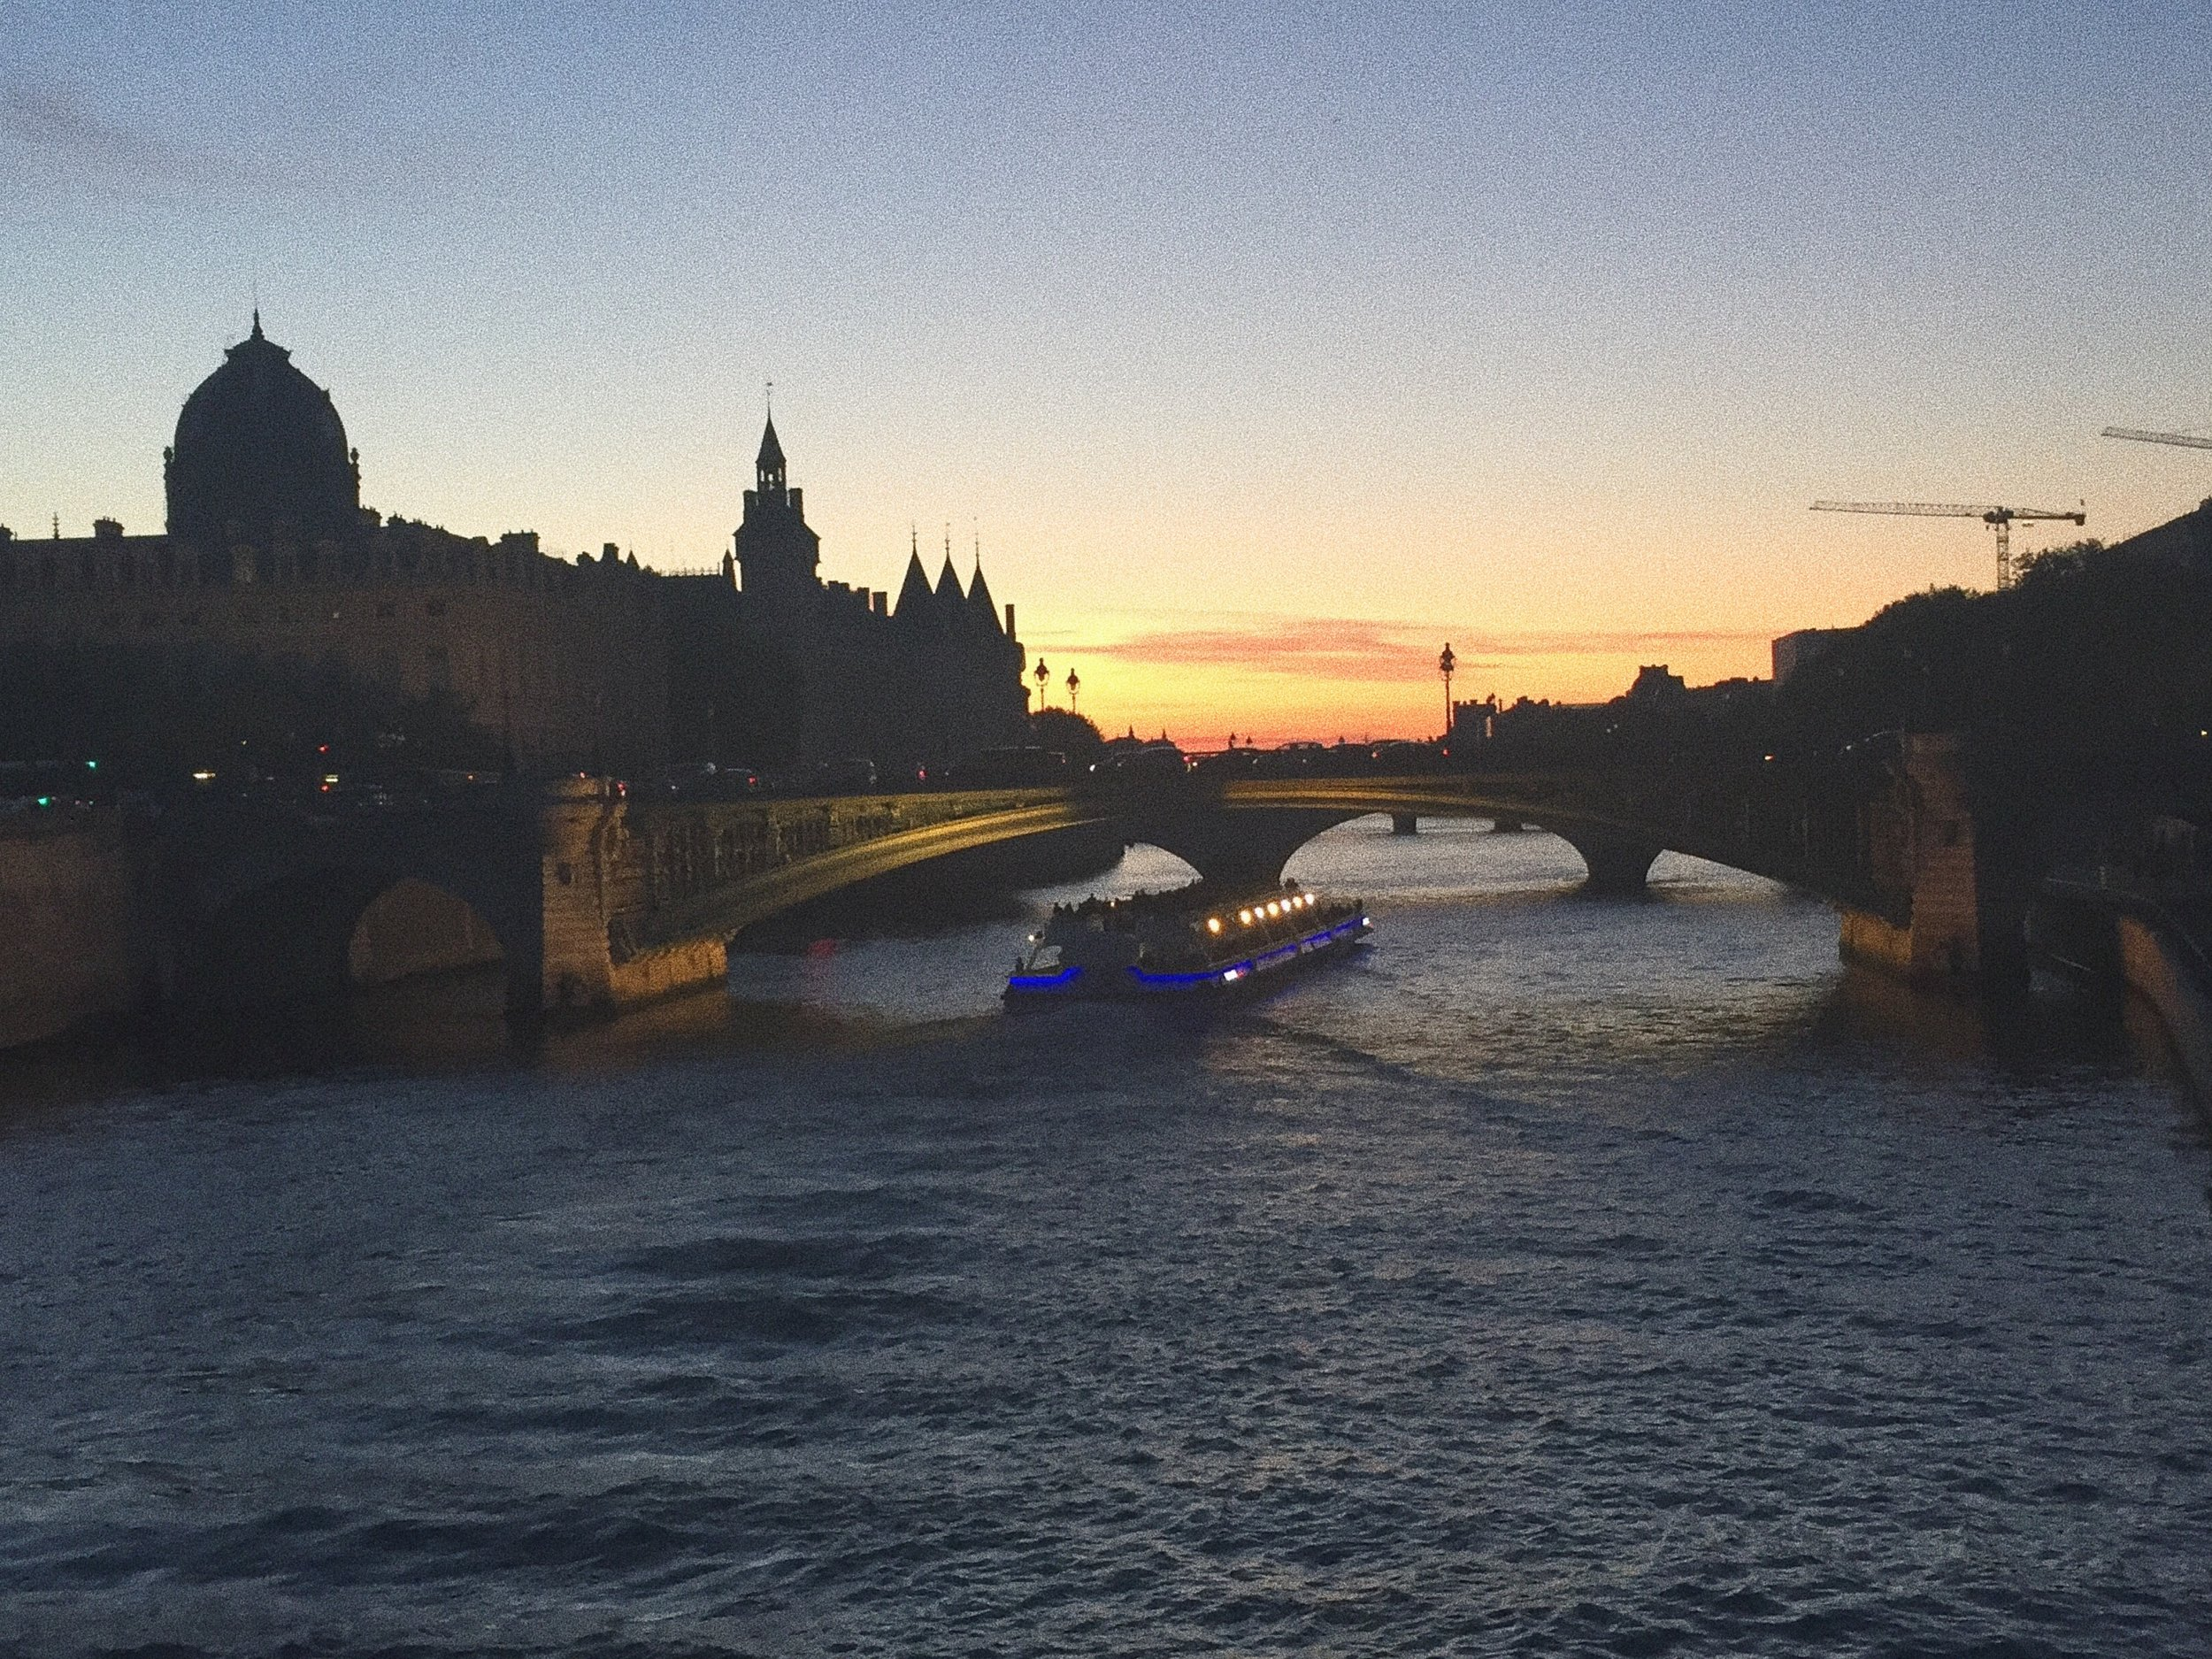 seine_river_canal_dusk_paris_france_touristguide_travelguide_europe_eurotrip_vacation